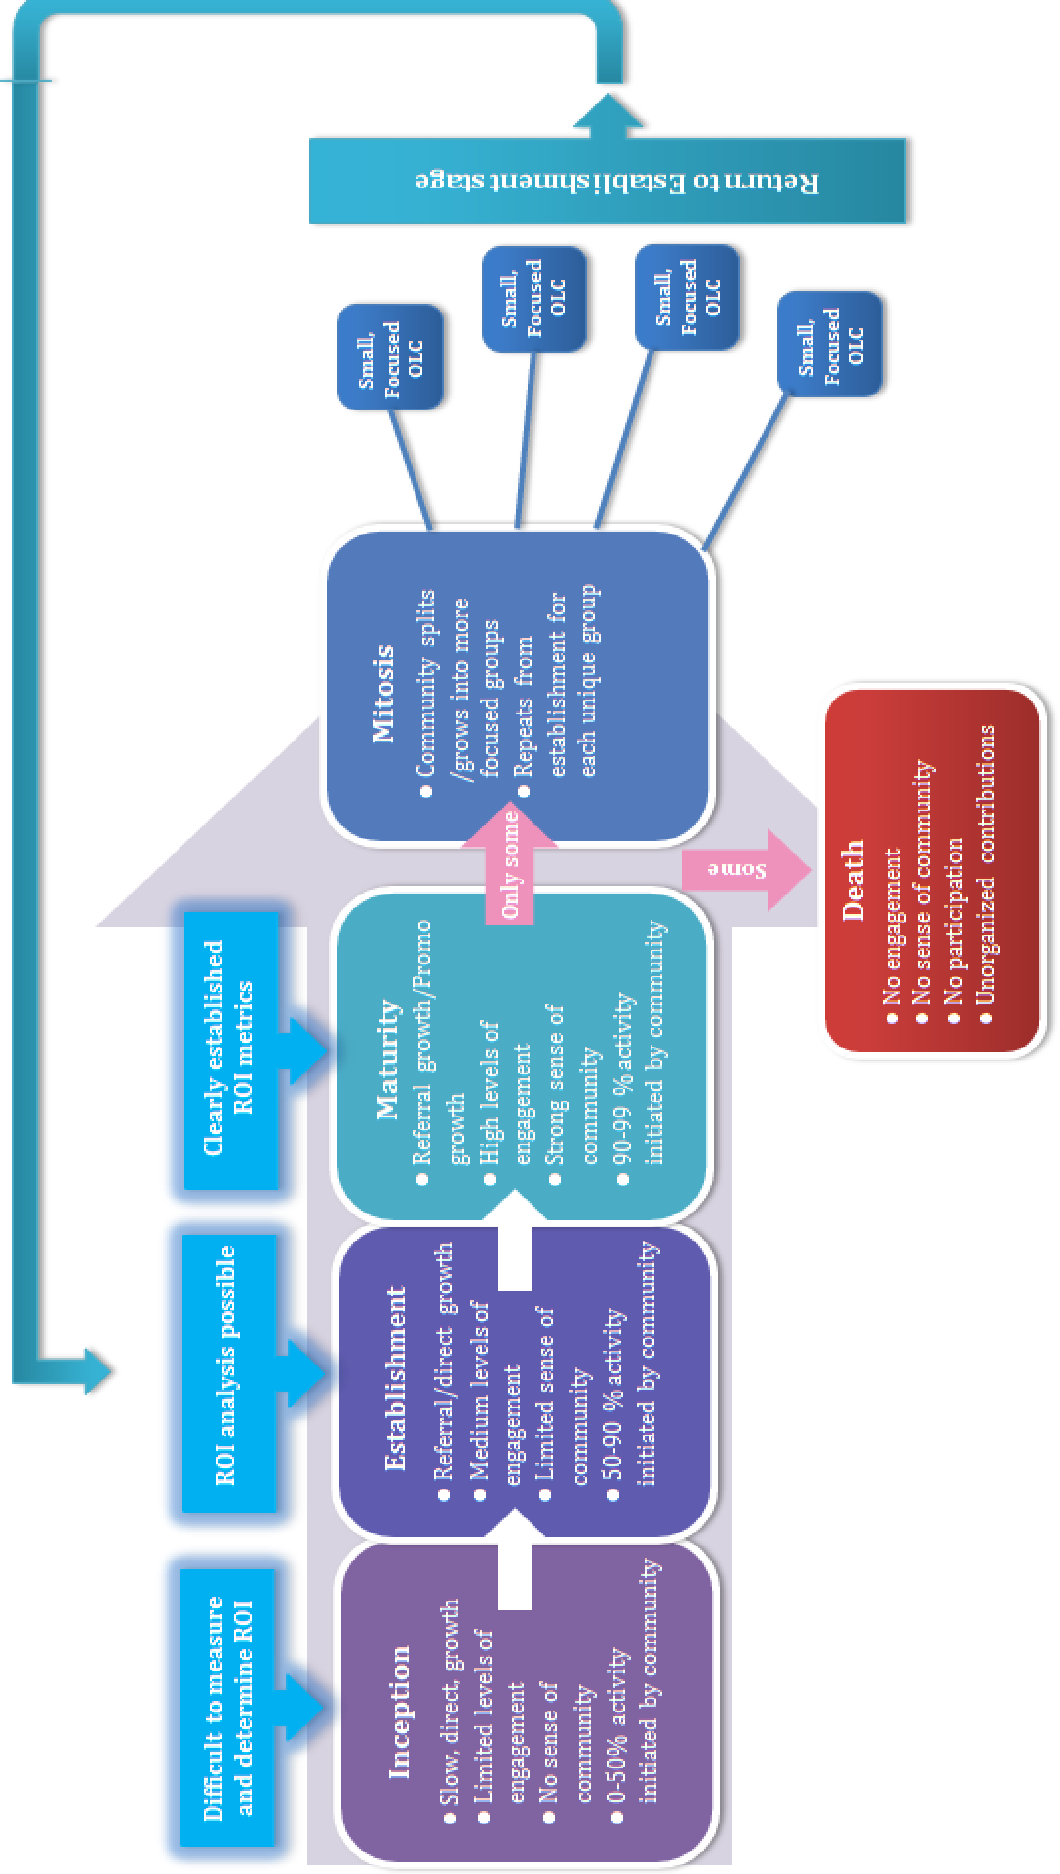 Figure 6: Own Model: The online community life-cycle